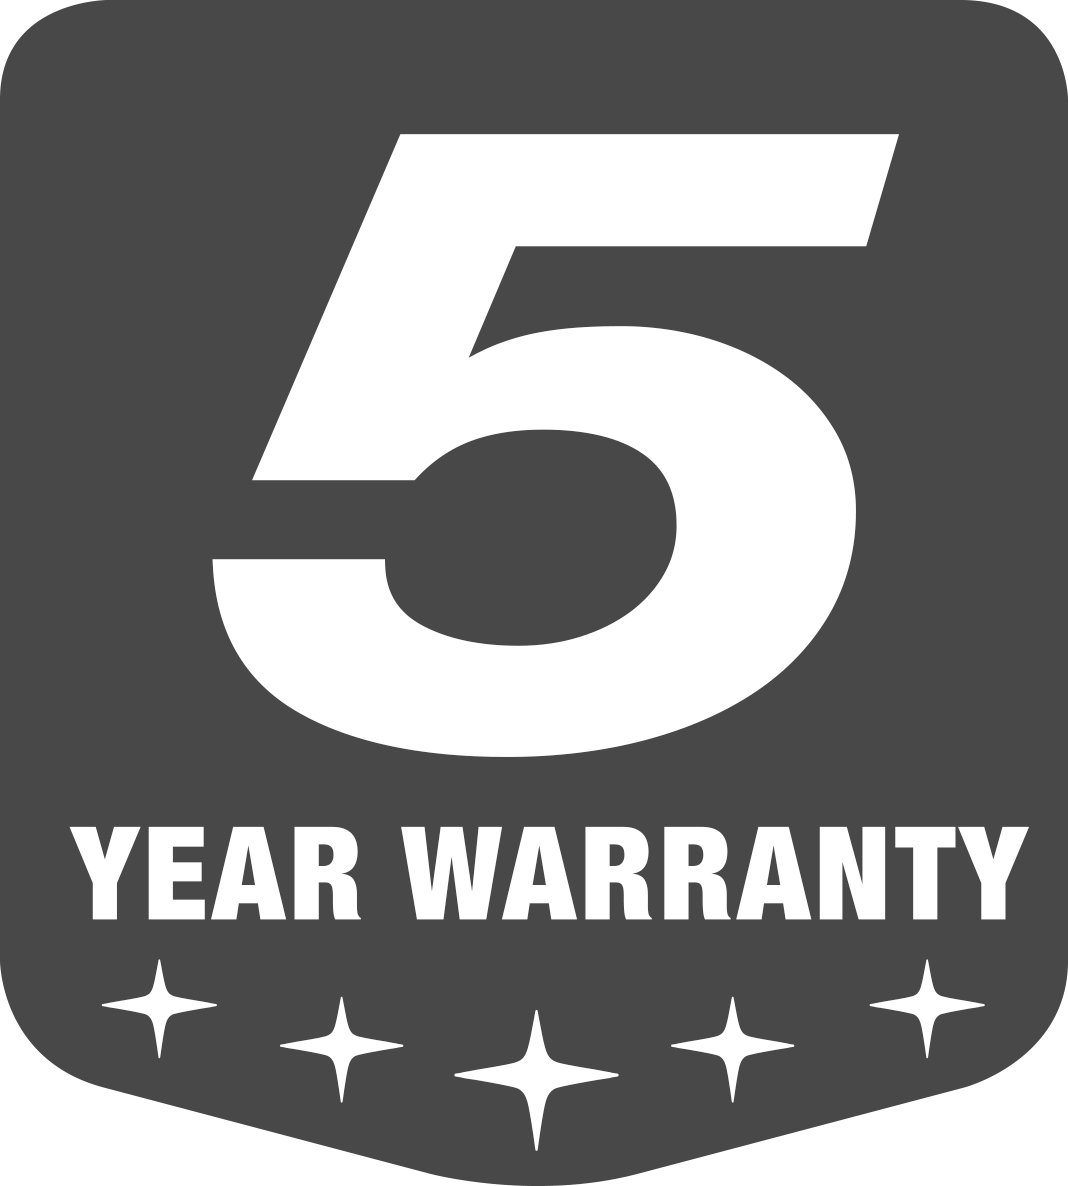 Subru 5-Year Warranty logo balck and White